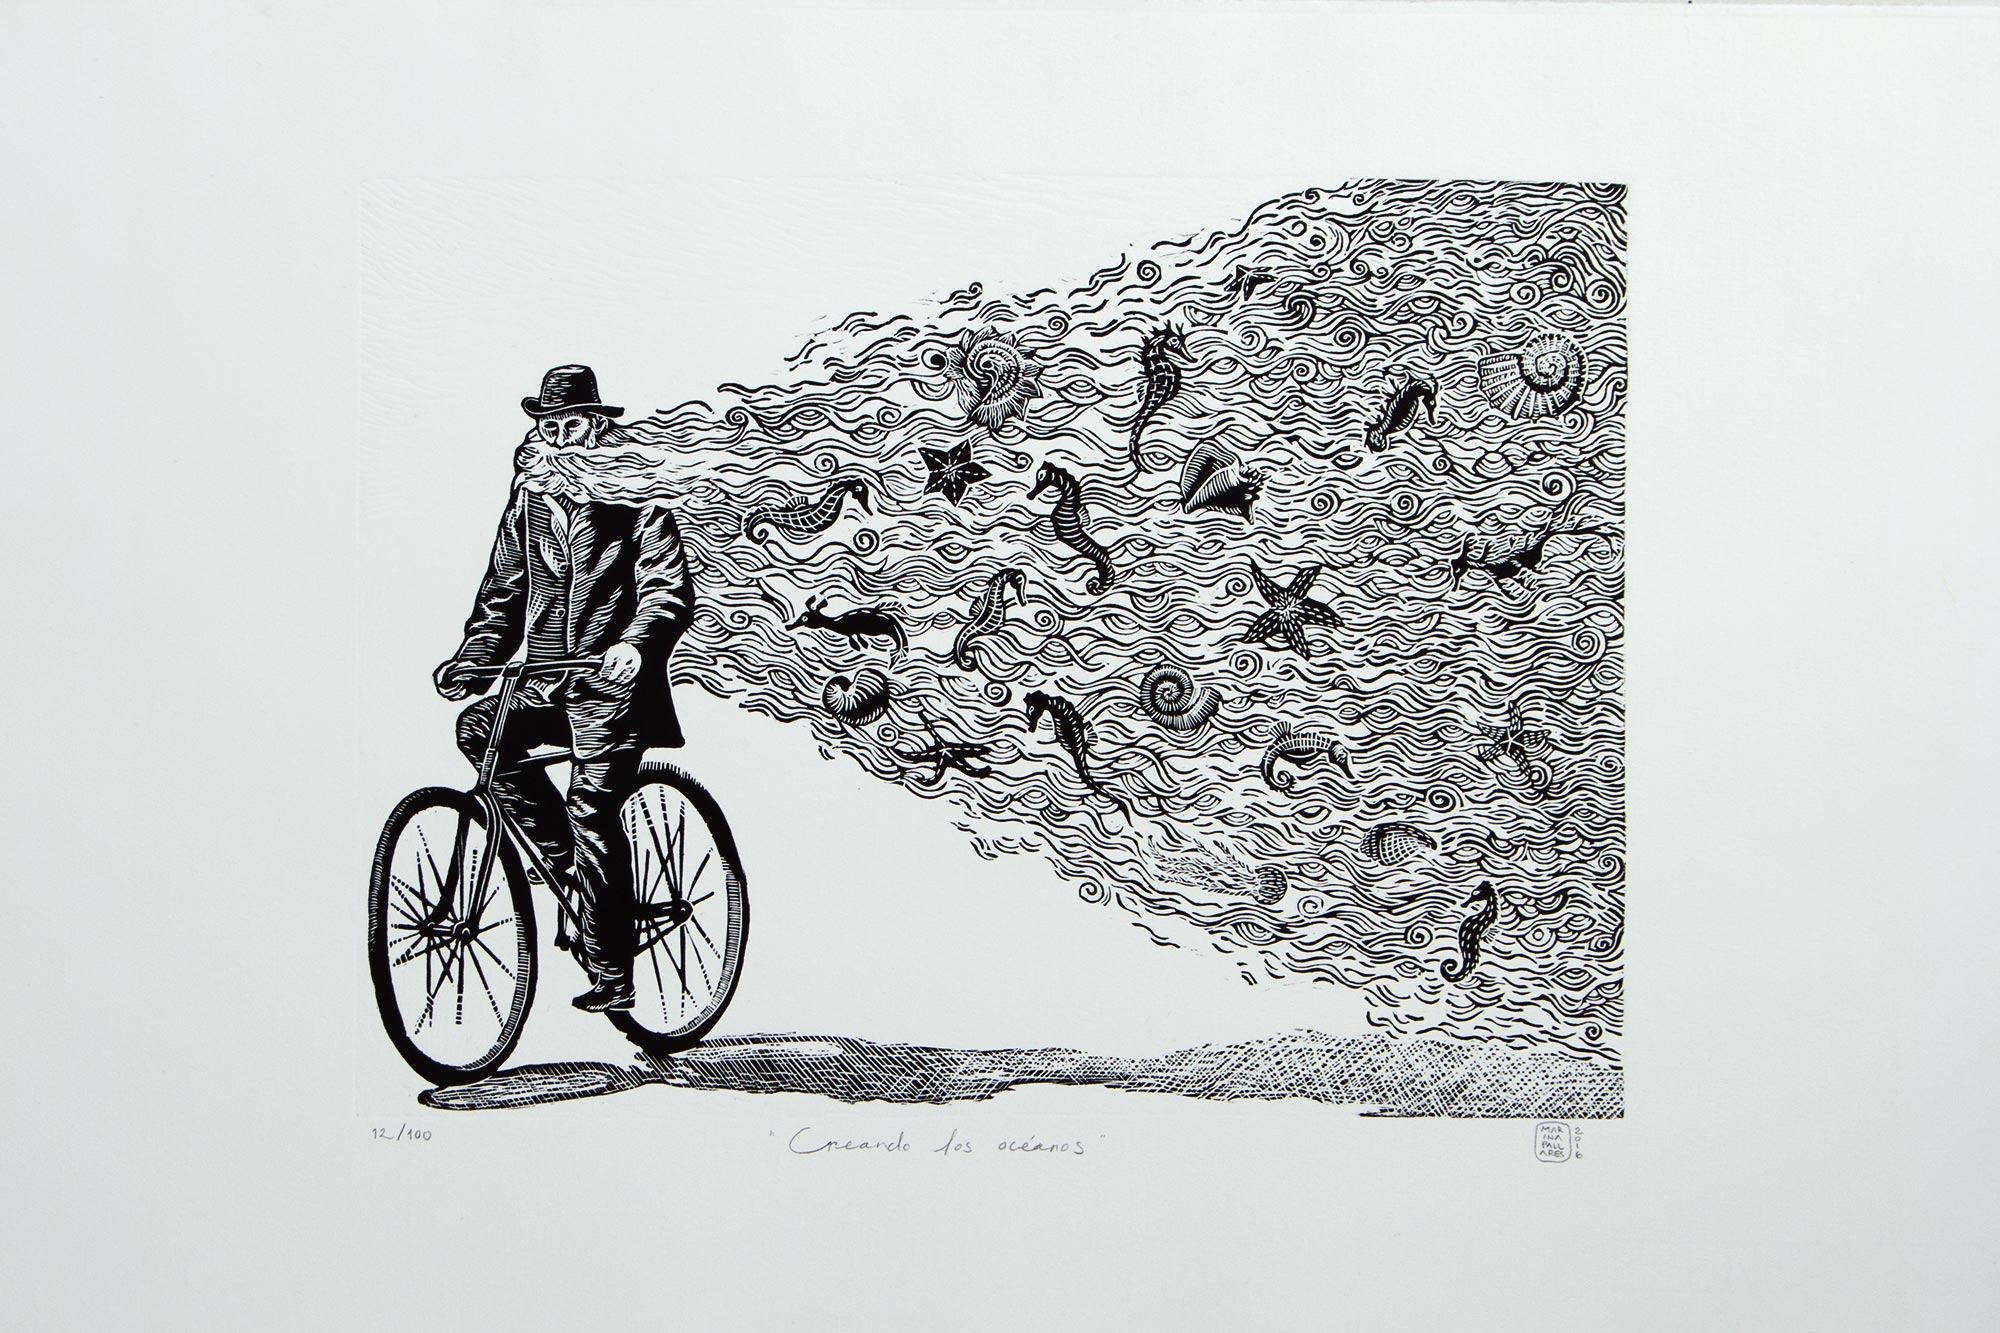 Surrealist Etched Print of a Man and Sea Life from Mexico, 'Creating the Oceans' Selecting the Perfect Painting for your Home